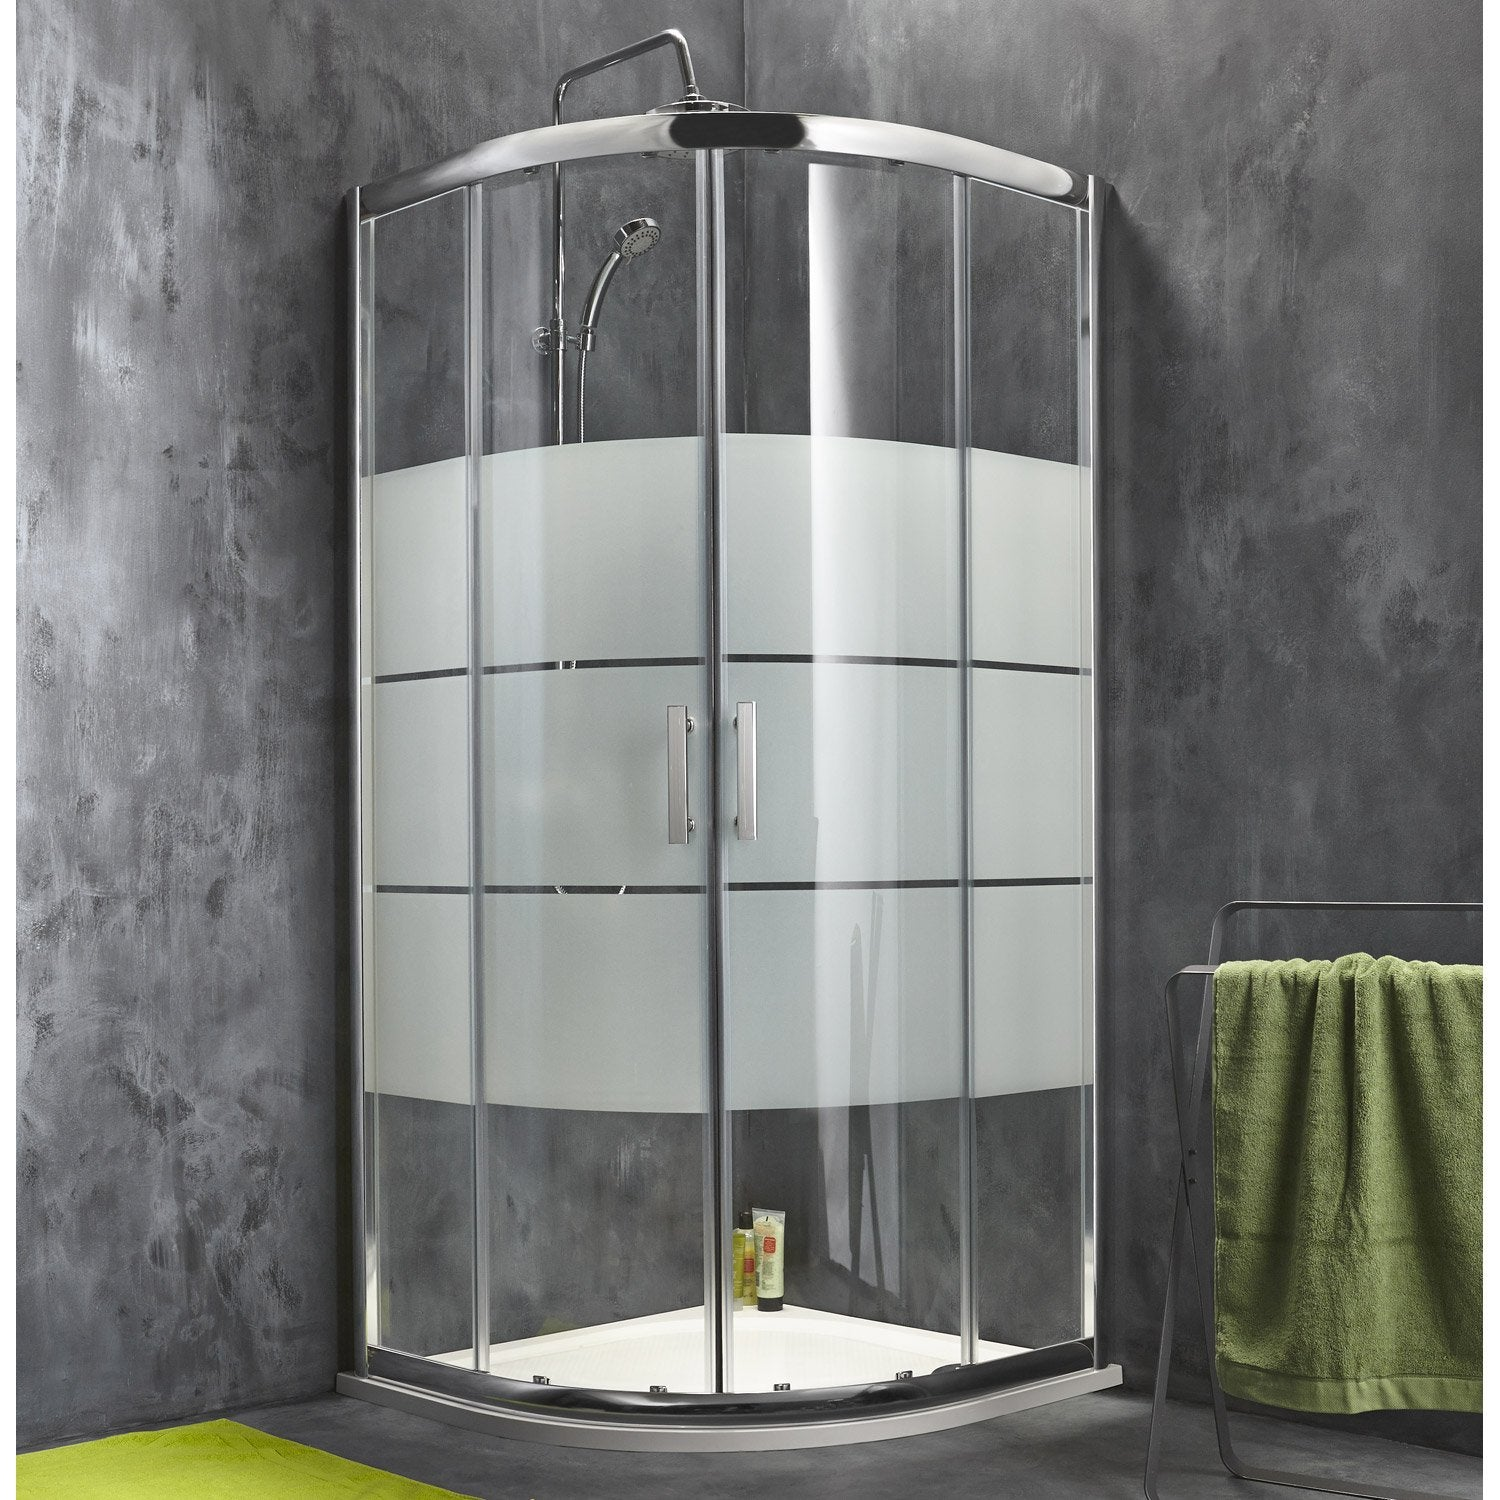 Porte de douche coulissante sensea optima 2 verre for Porte douche battant verre